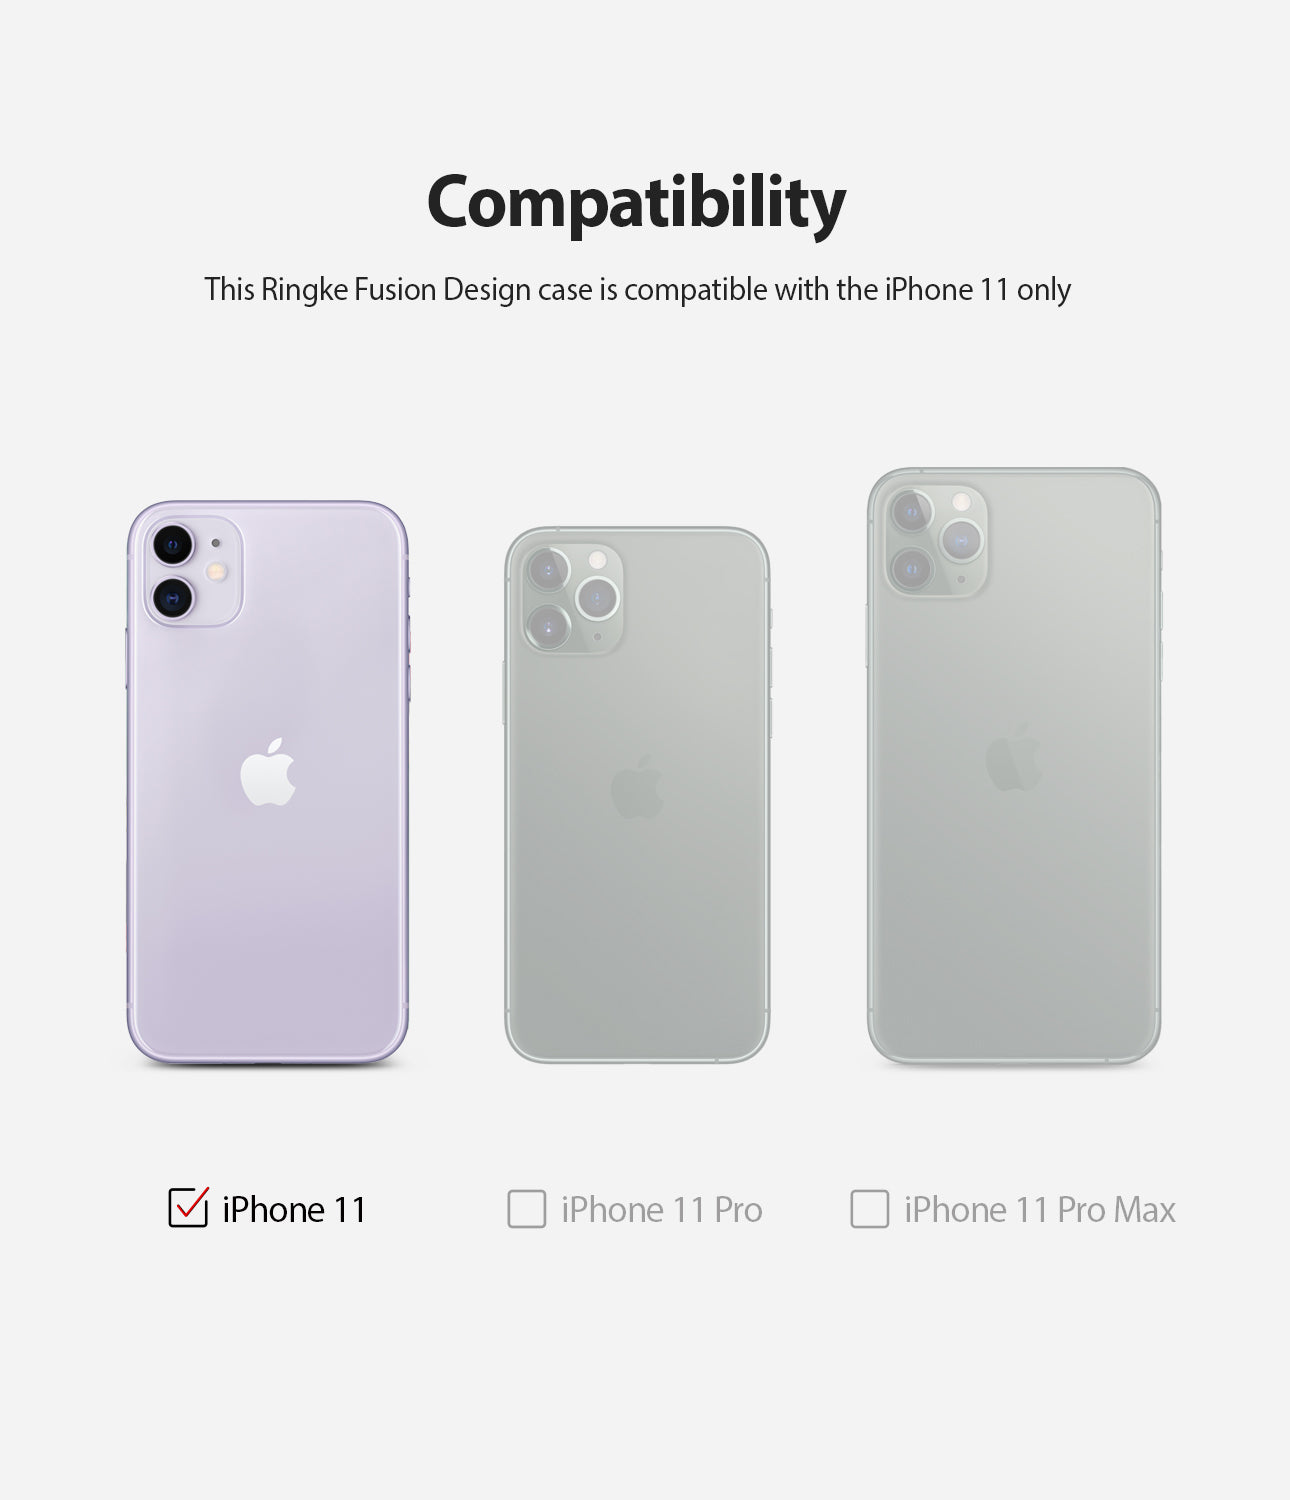 compatible only with apple iphone 11